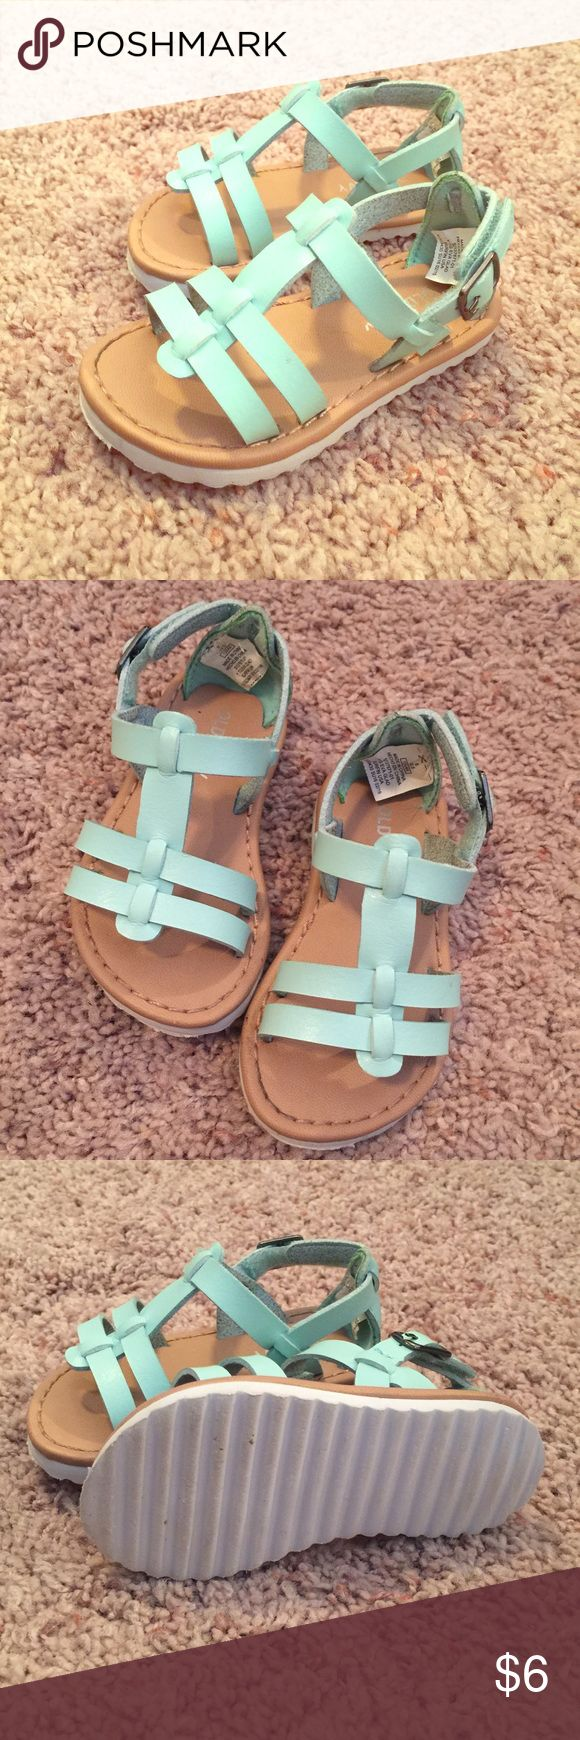 Old Navy Mint Green Sandals Like new Old Navy Mint Green Sandals. Worn only a few times and from a smoke free home. Old Navy Shoes Sandals & Flip Flops